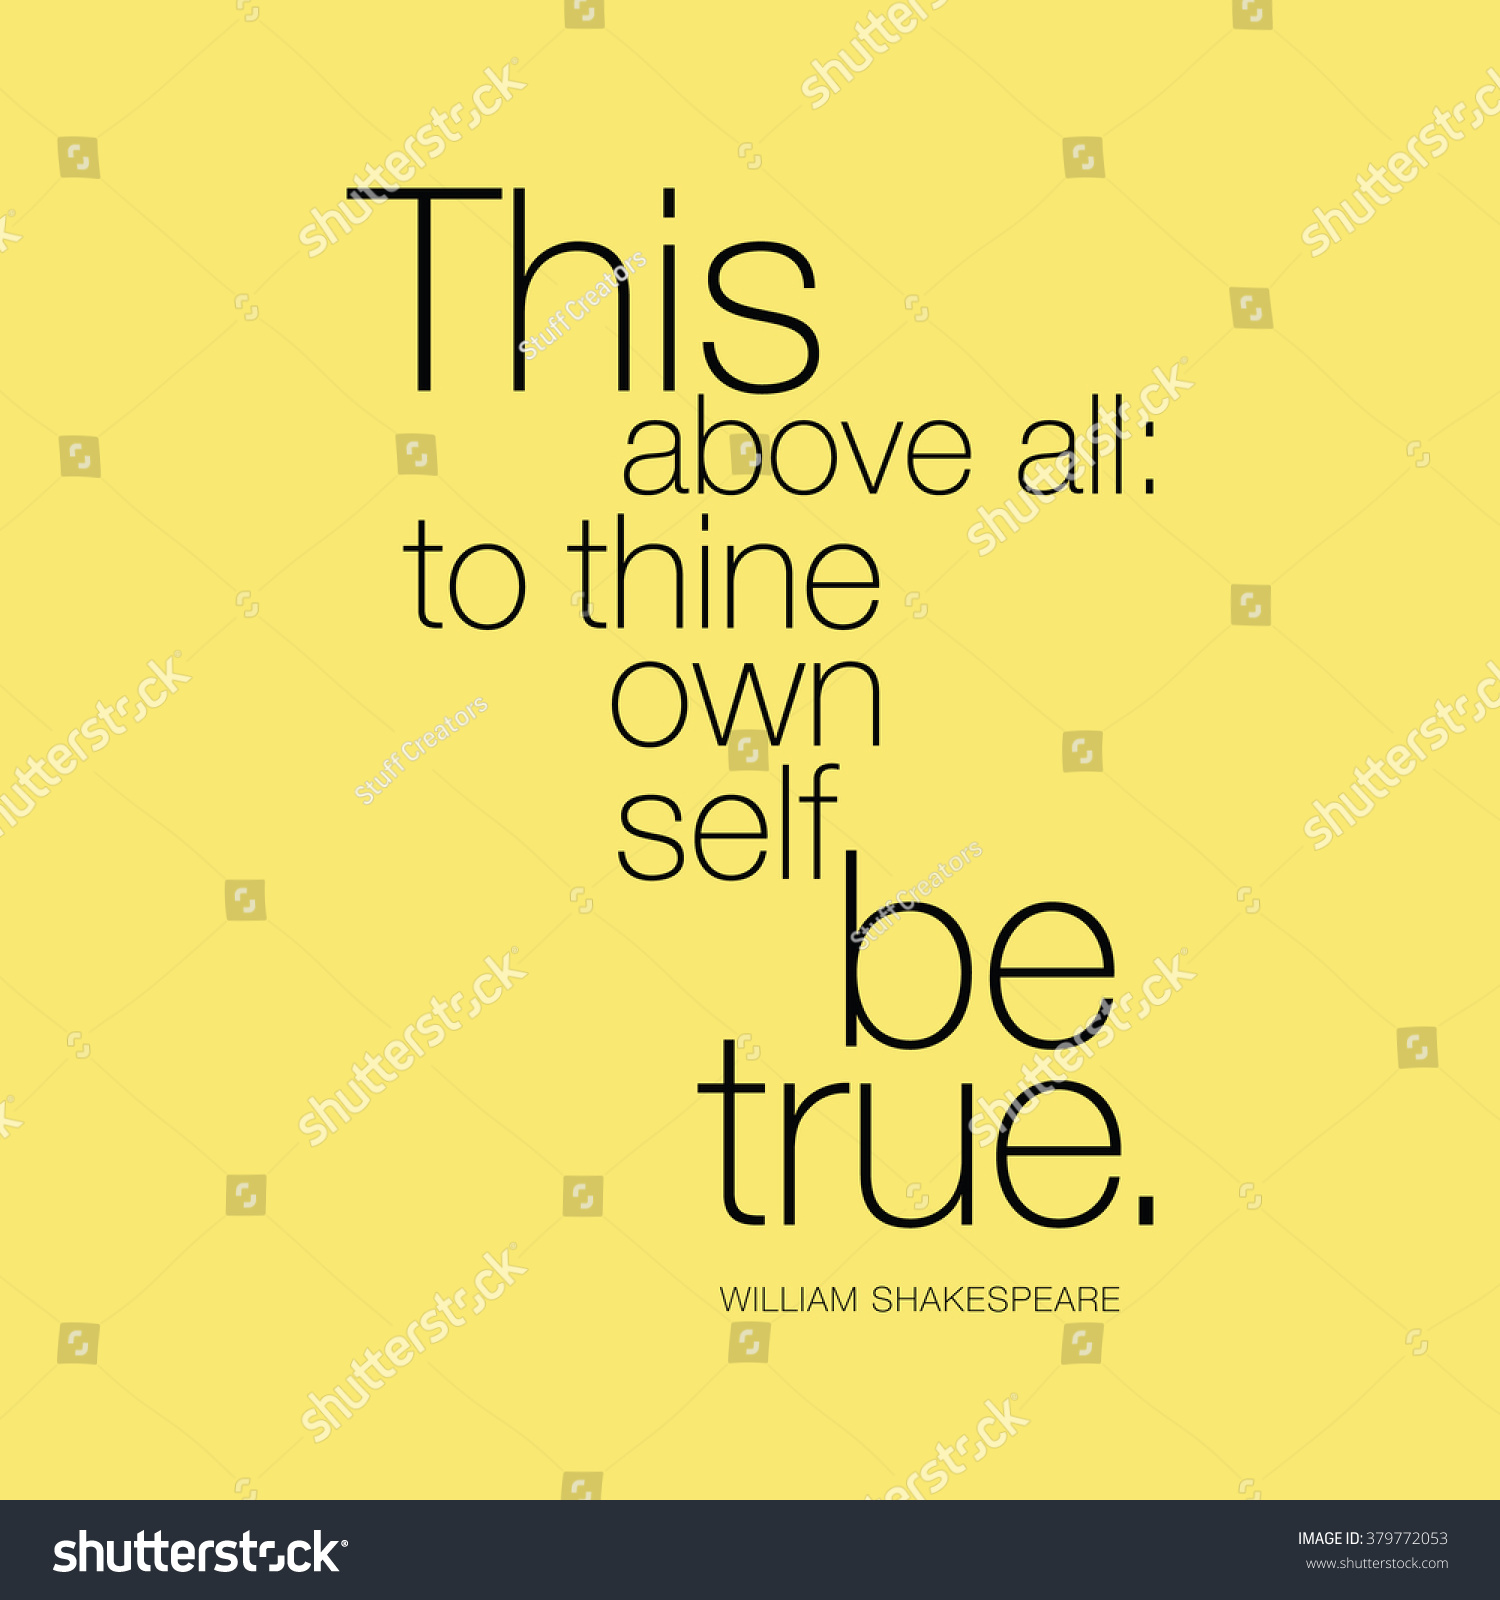 to thine ownself be true